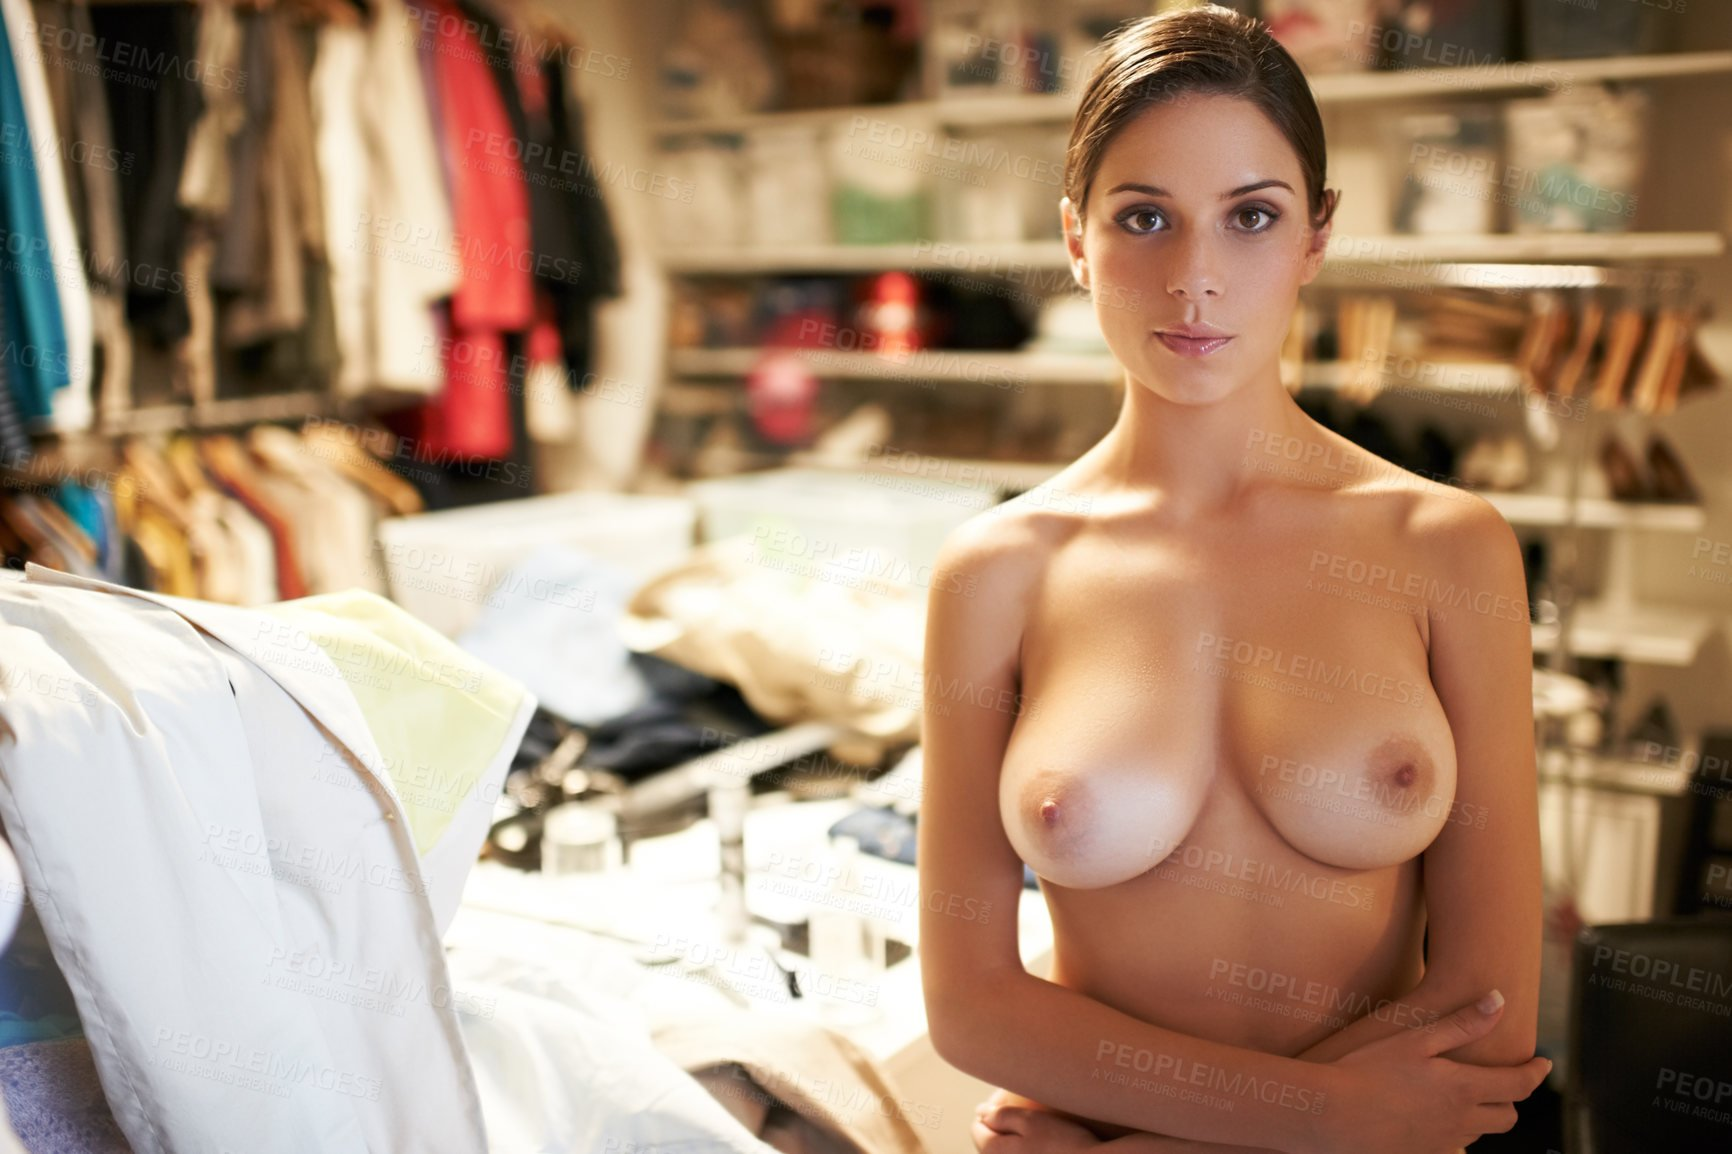 Stockphoto Nude Images